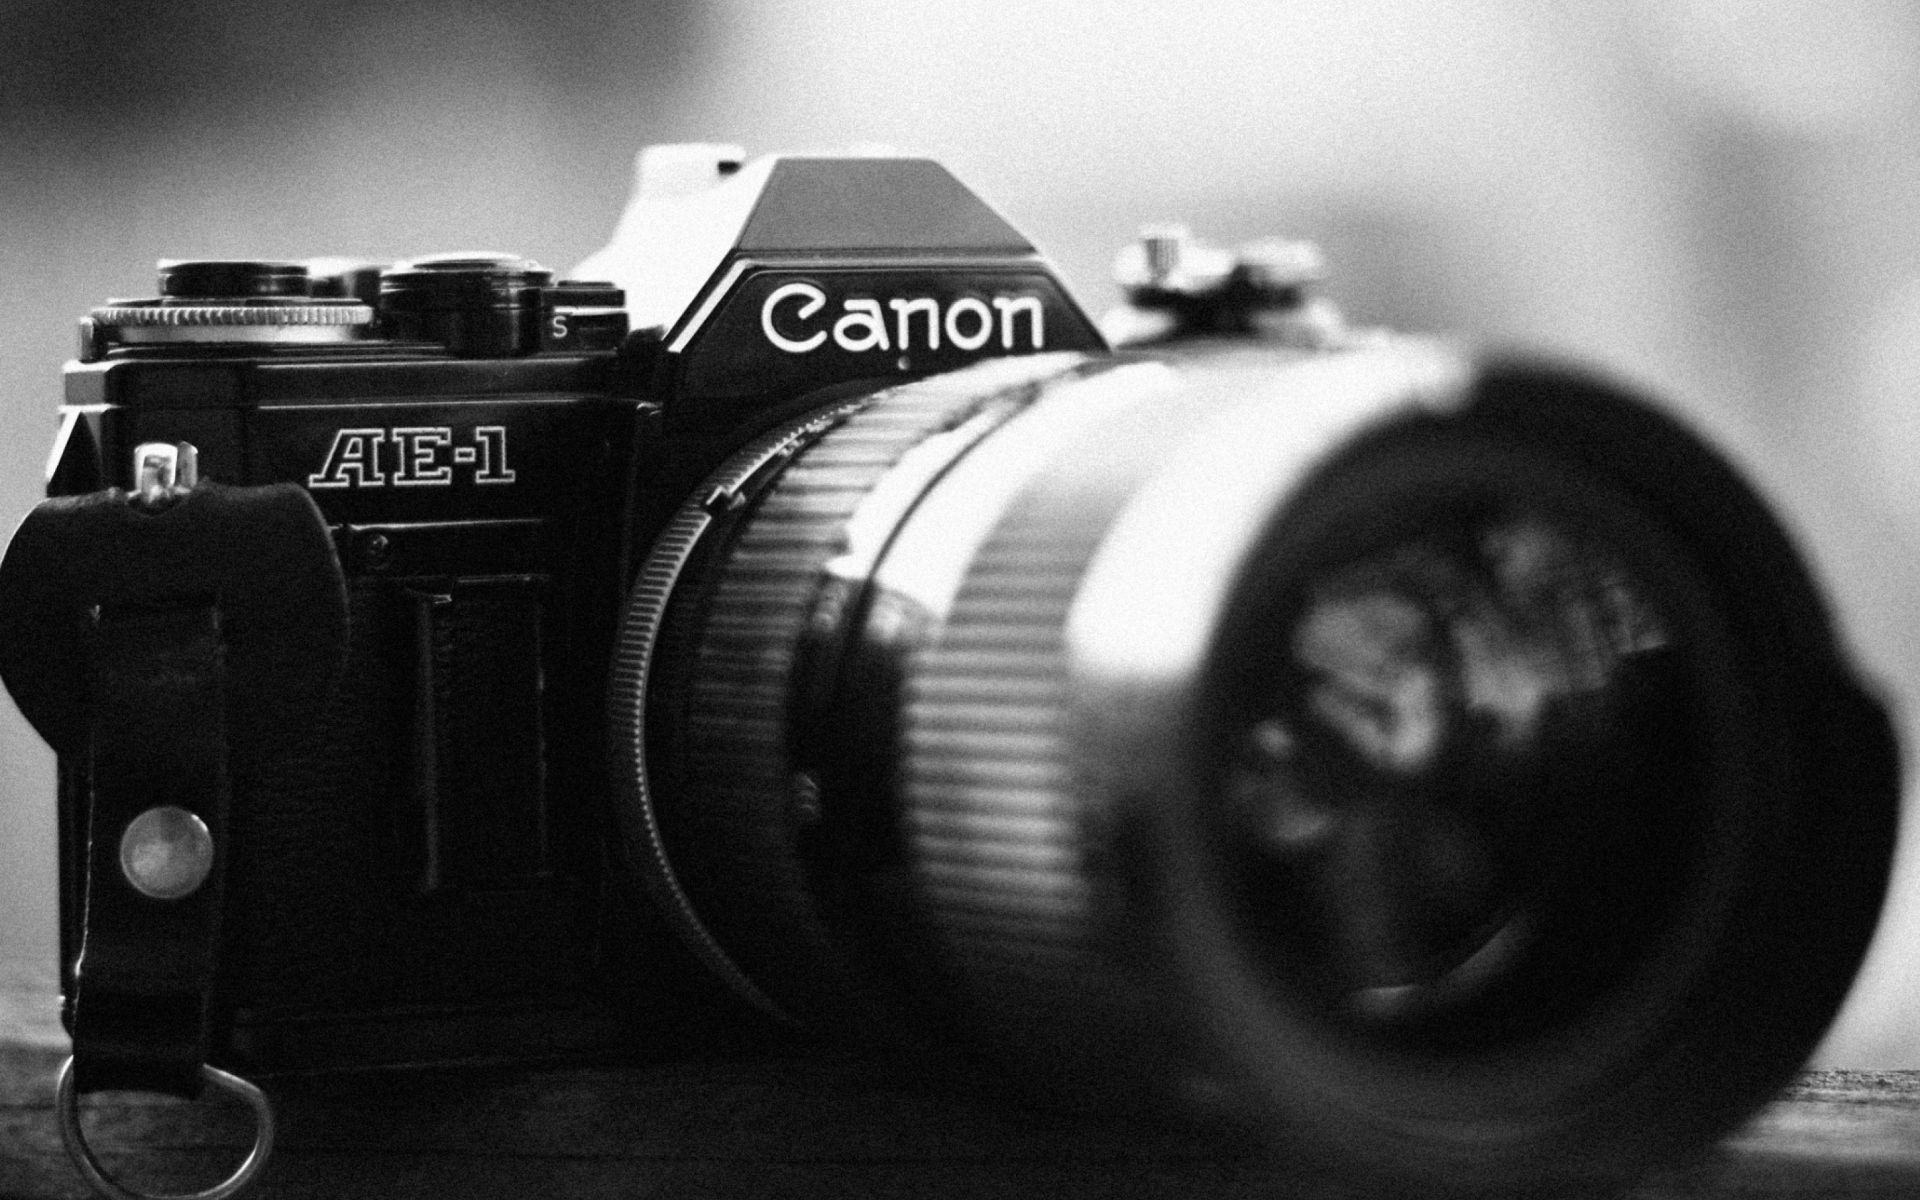 Ae-1 Canon Camera screenshot #1 1920x1200